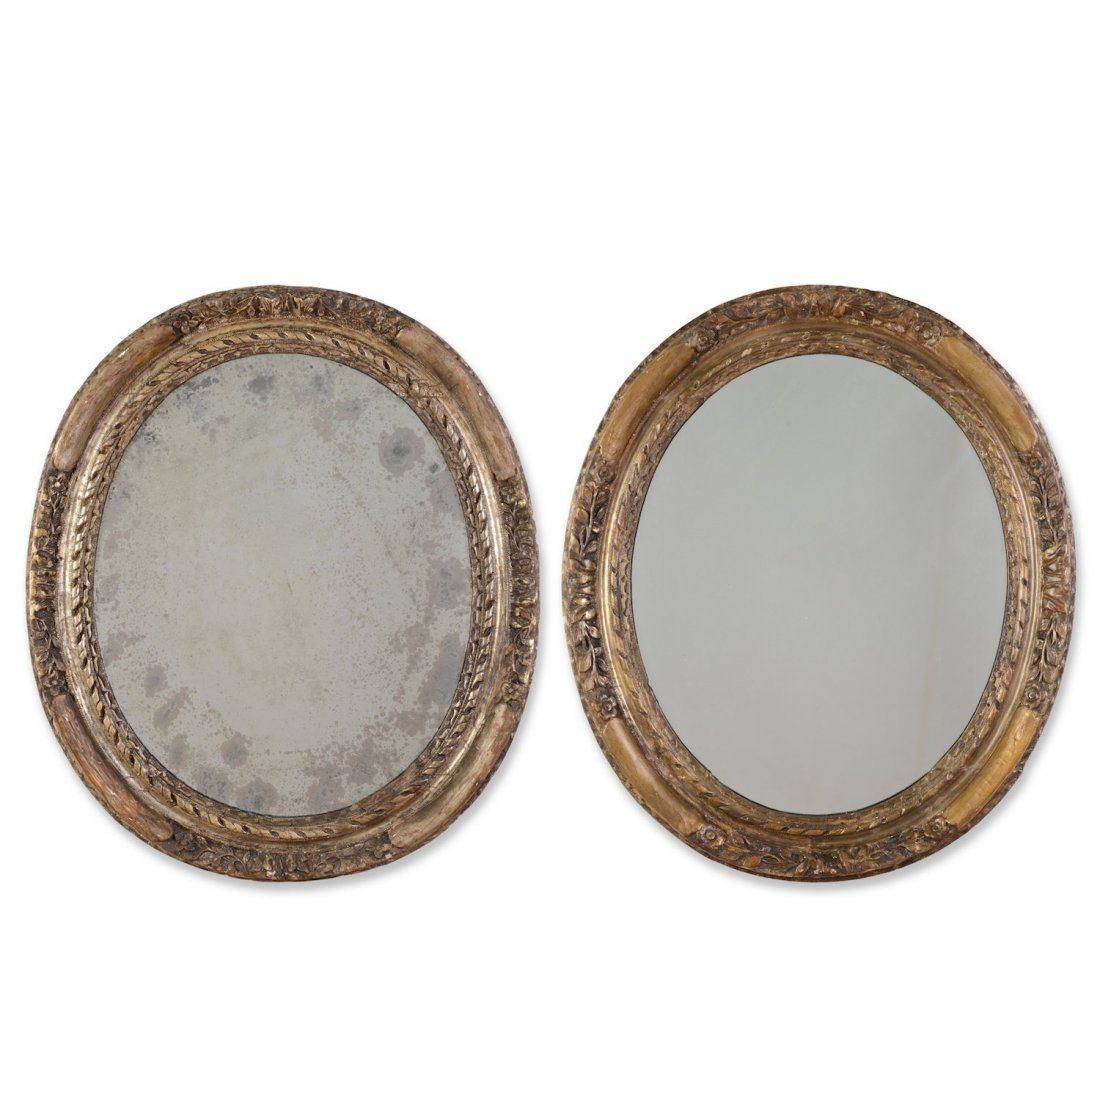 Pair Continental Neo-classical silvered wood mirrors